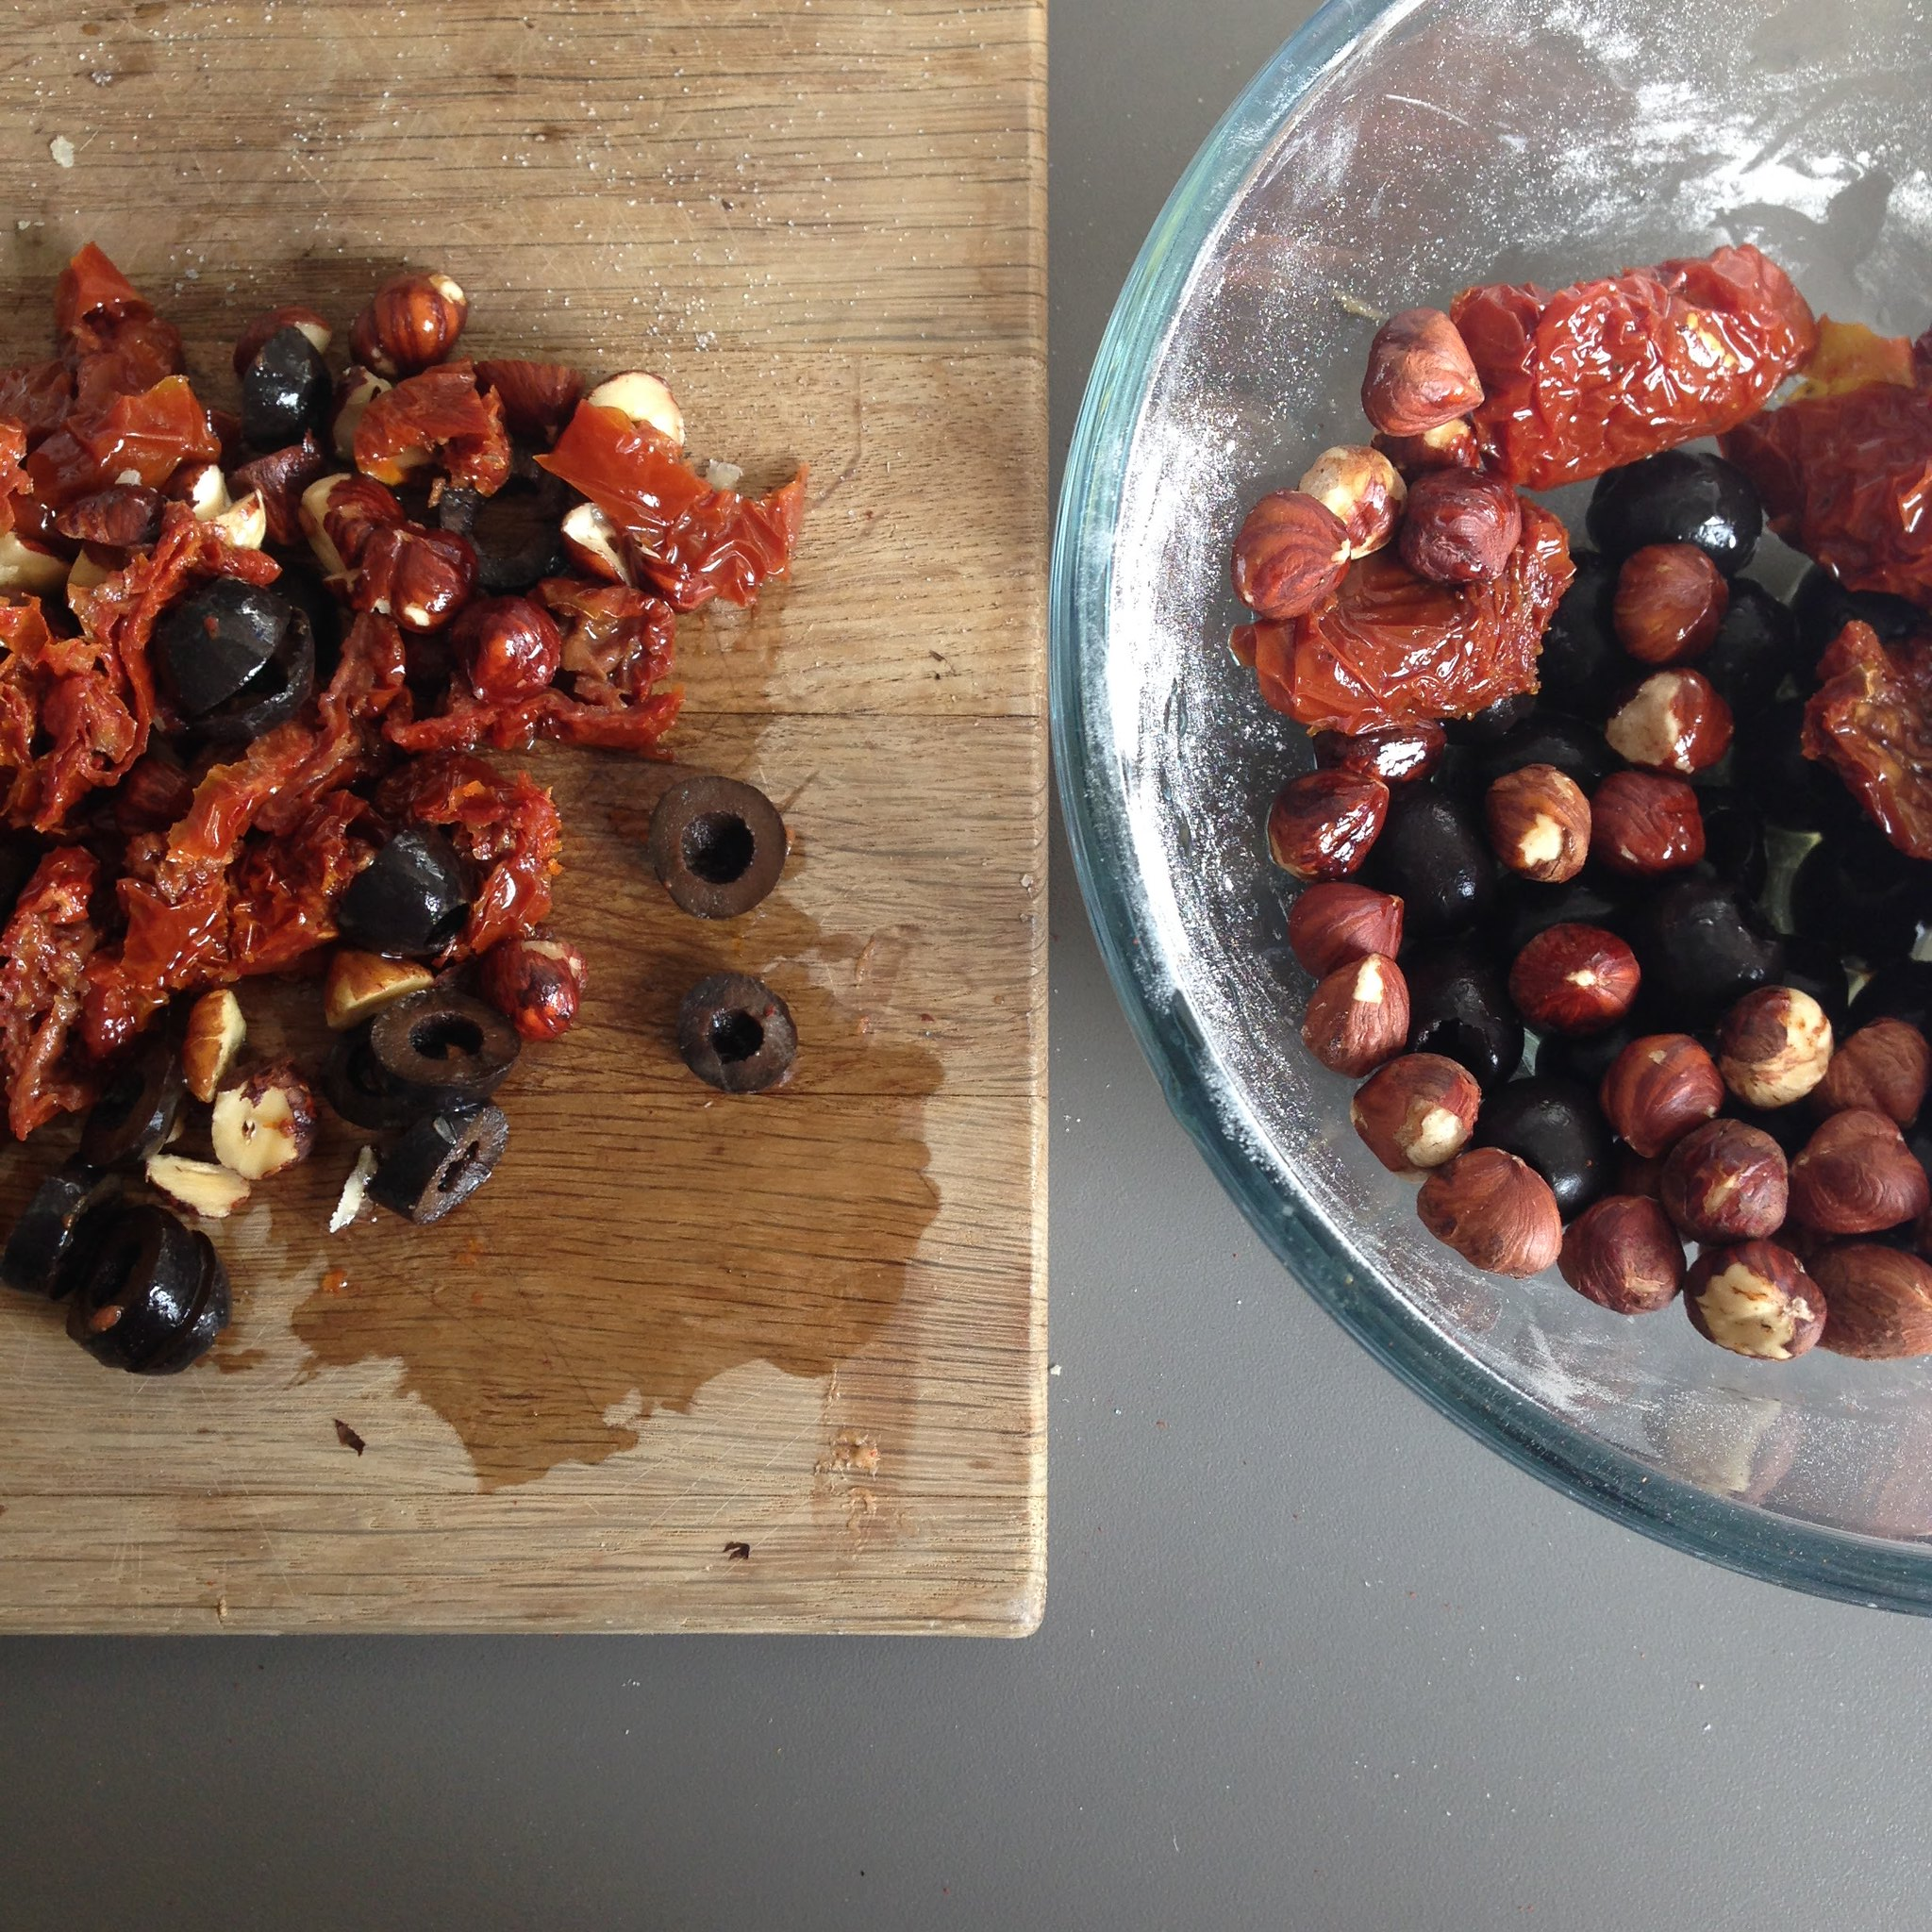 sundried tomatoes and olives and hazelnuts